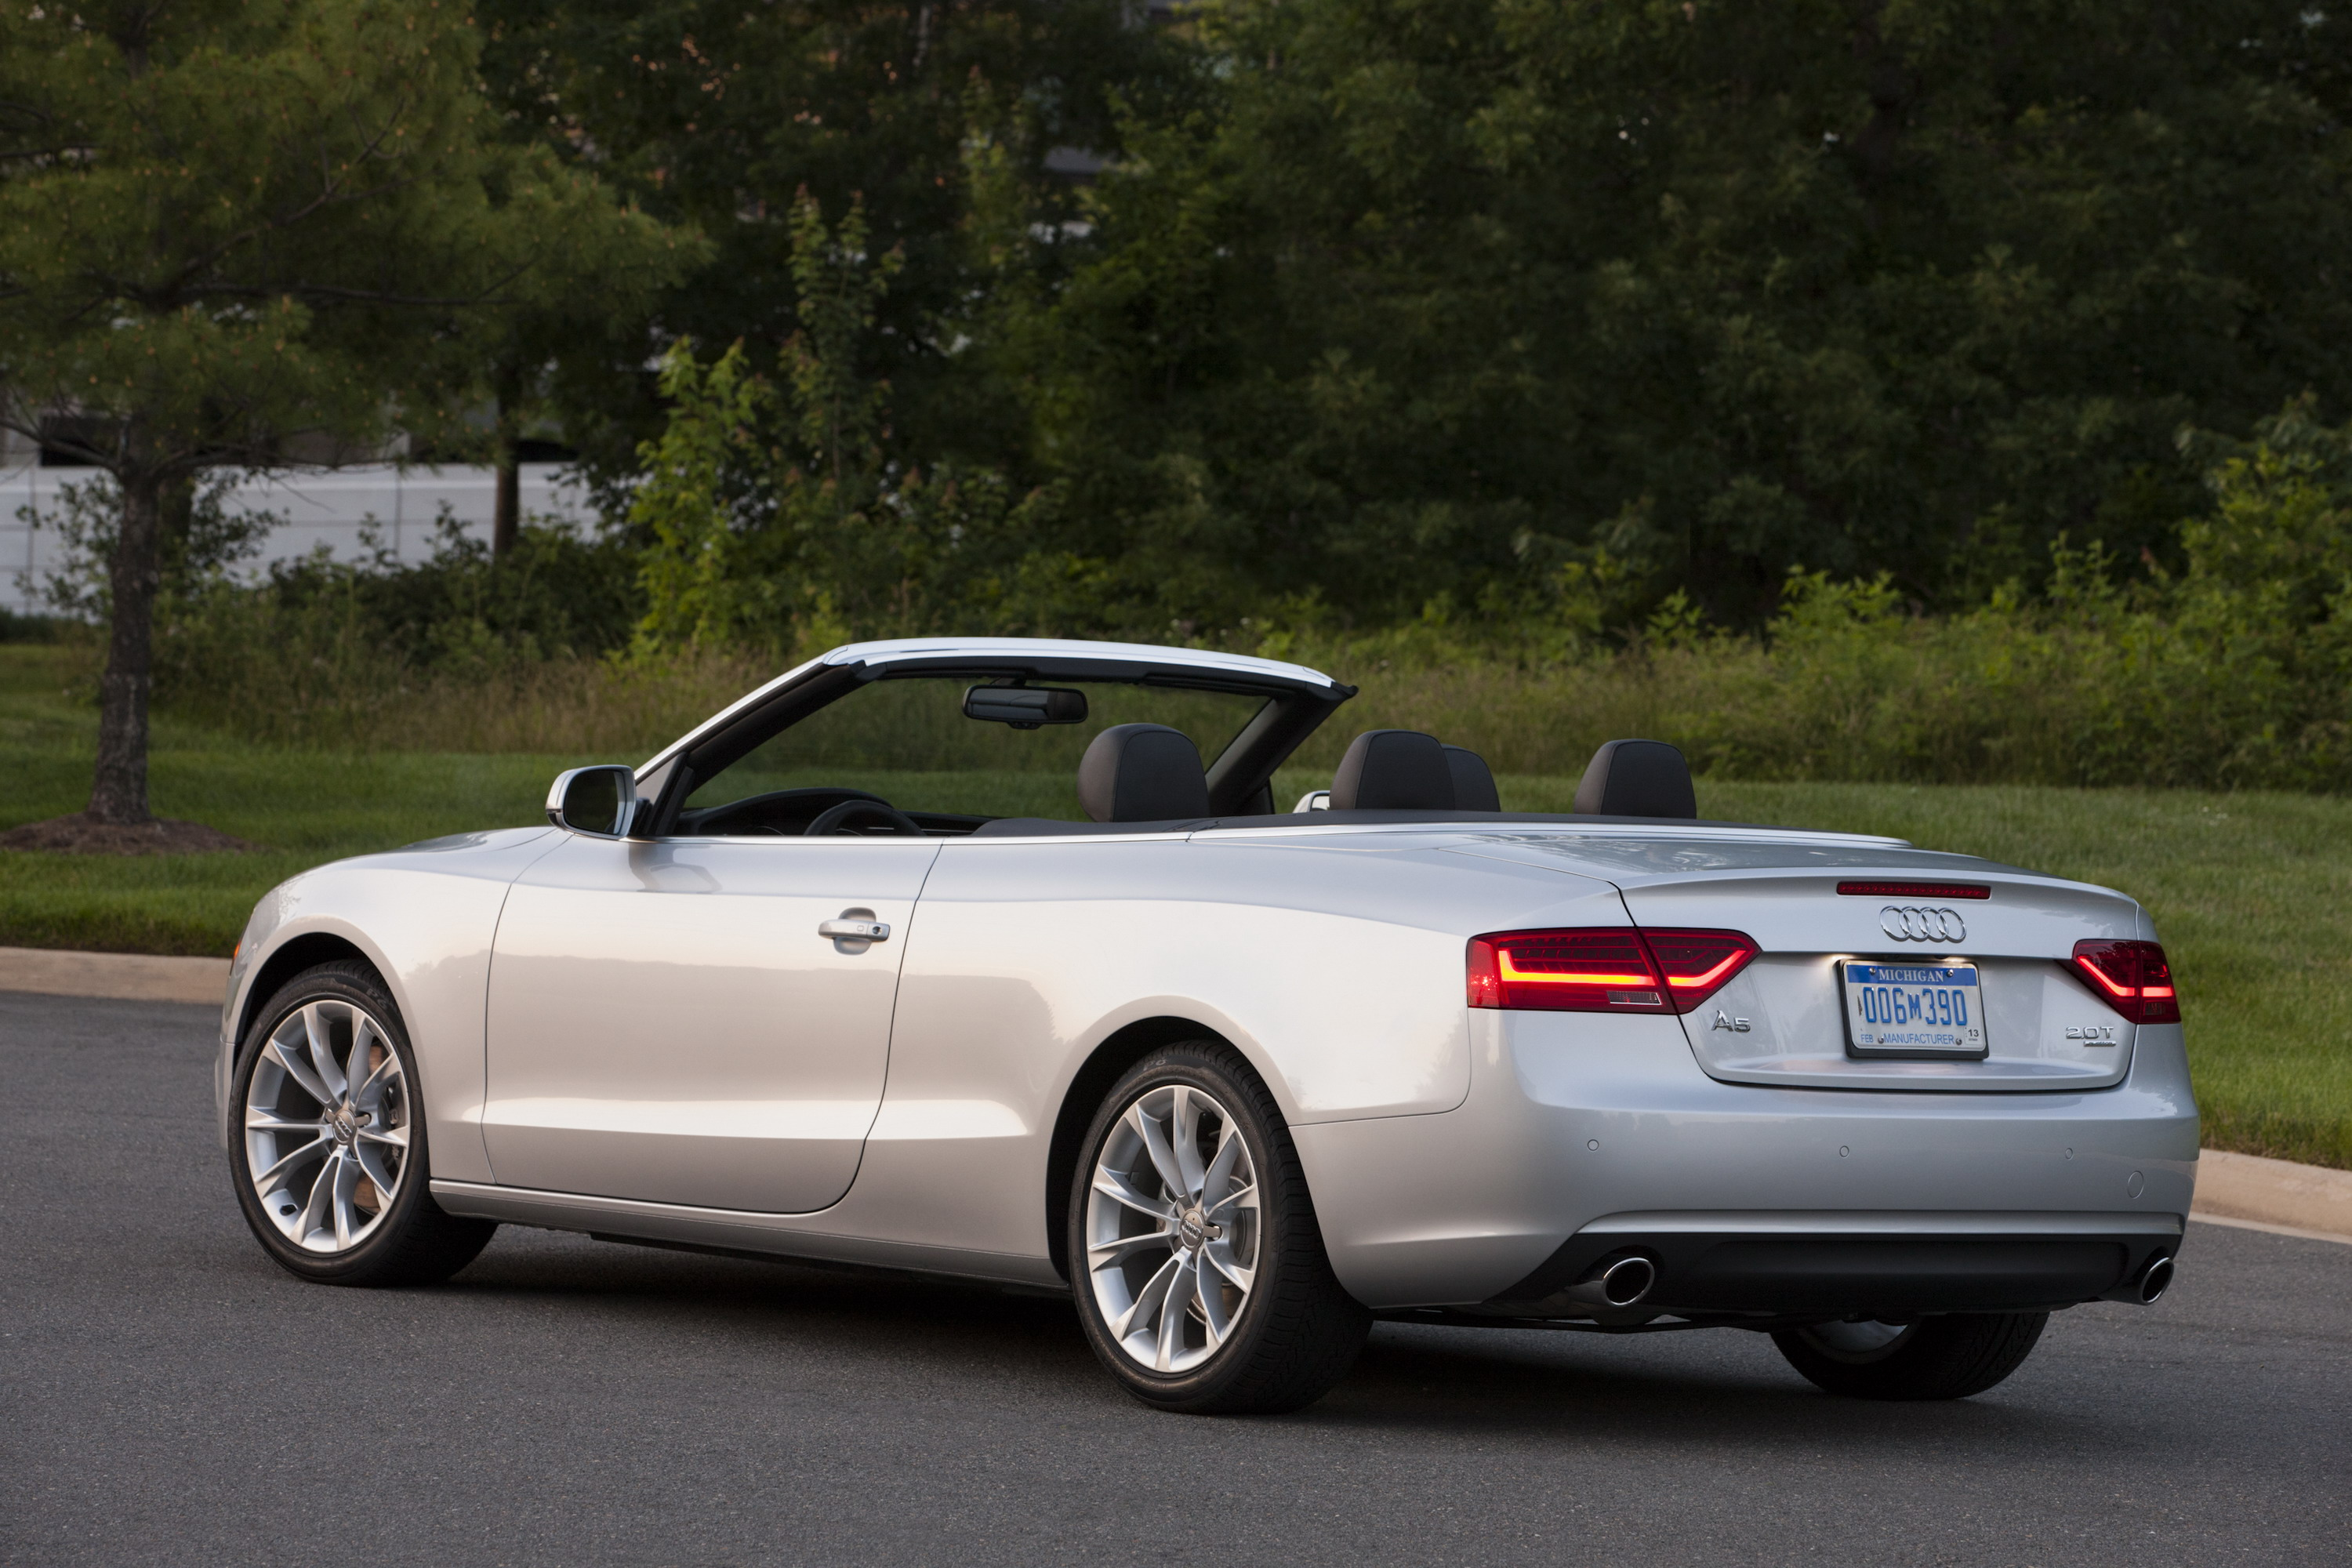 2014 Audi A5 Convertible Gallery 511599 | Top Speed